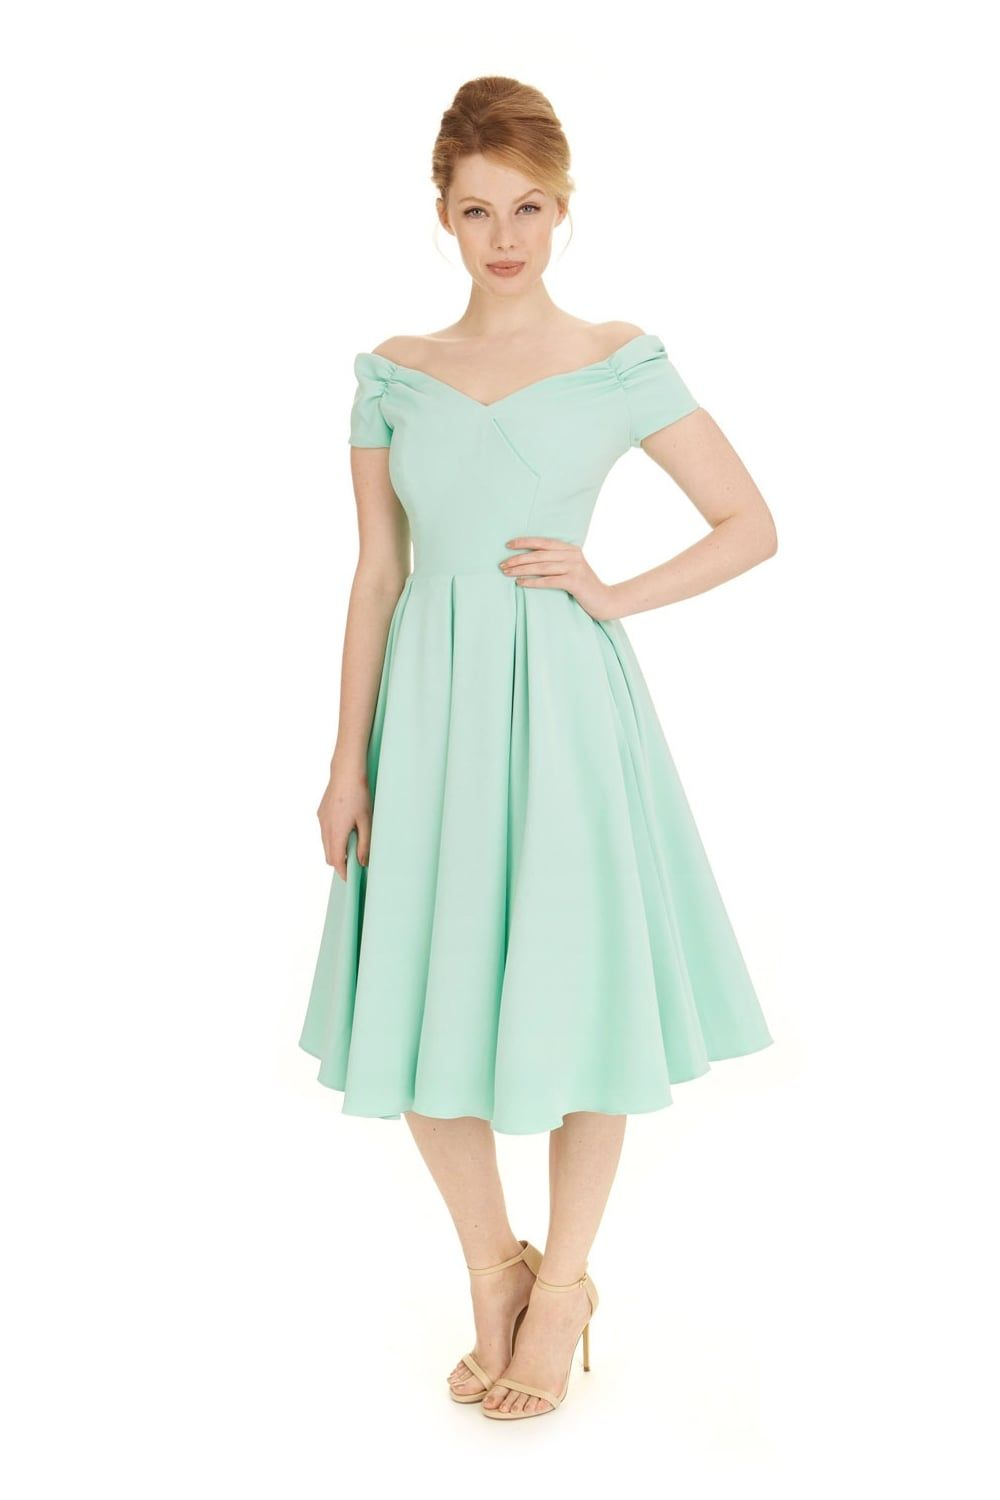 494d3e490fd4b The Pretty Dress Company Fatale Luxe Crepe Prom Dress | In My Ideal ...